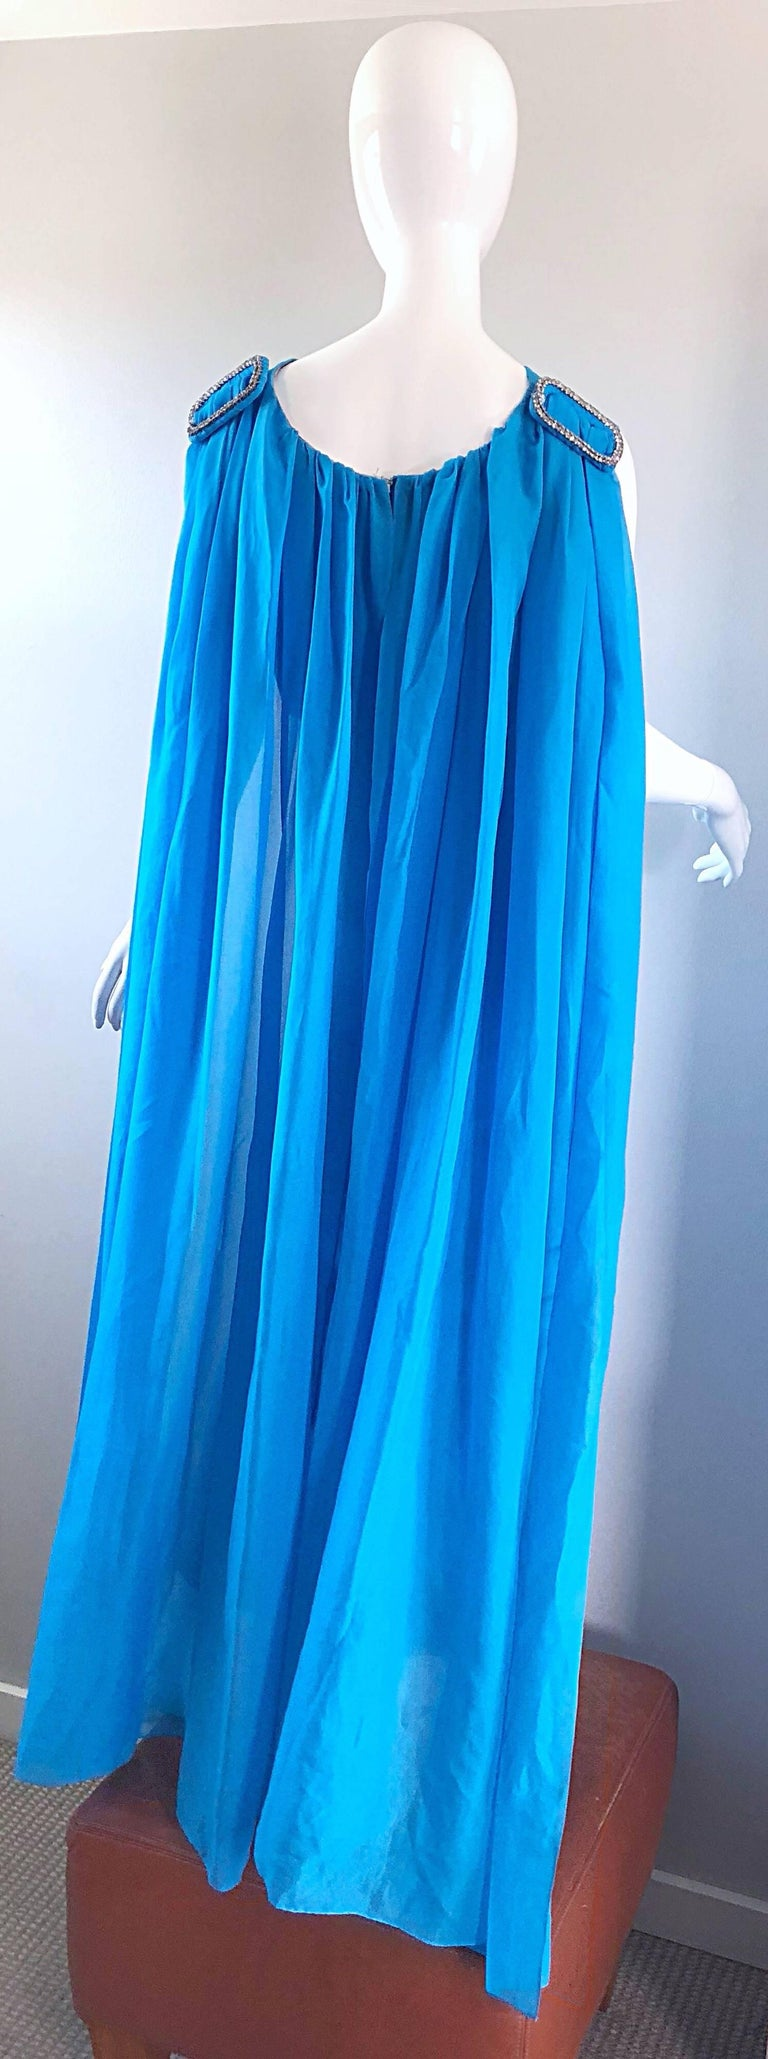 Incredible 1960s Turquoise Blue Chiffon Rhinestone Encrusted Vintage Cape Gown For Sale 10